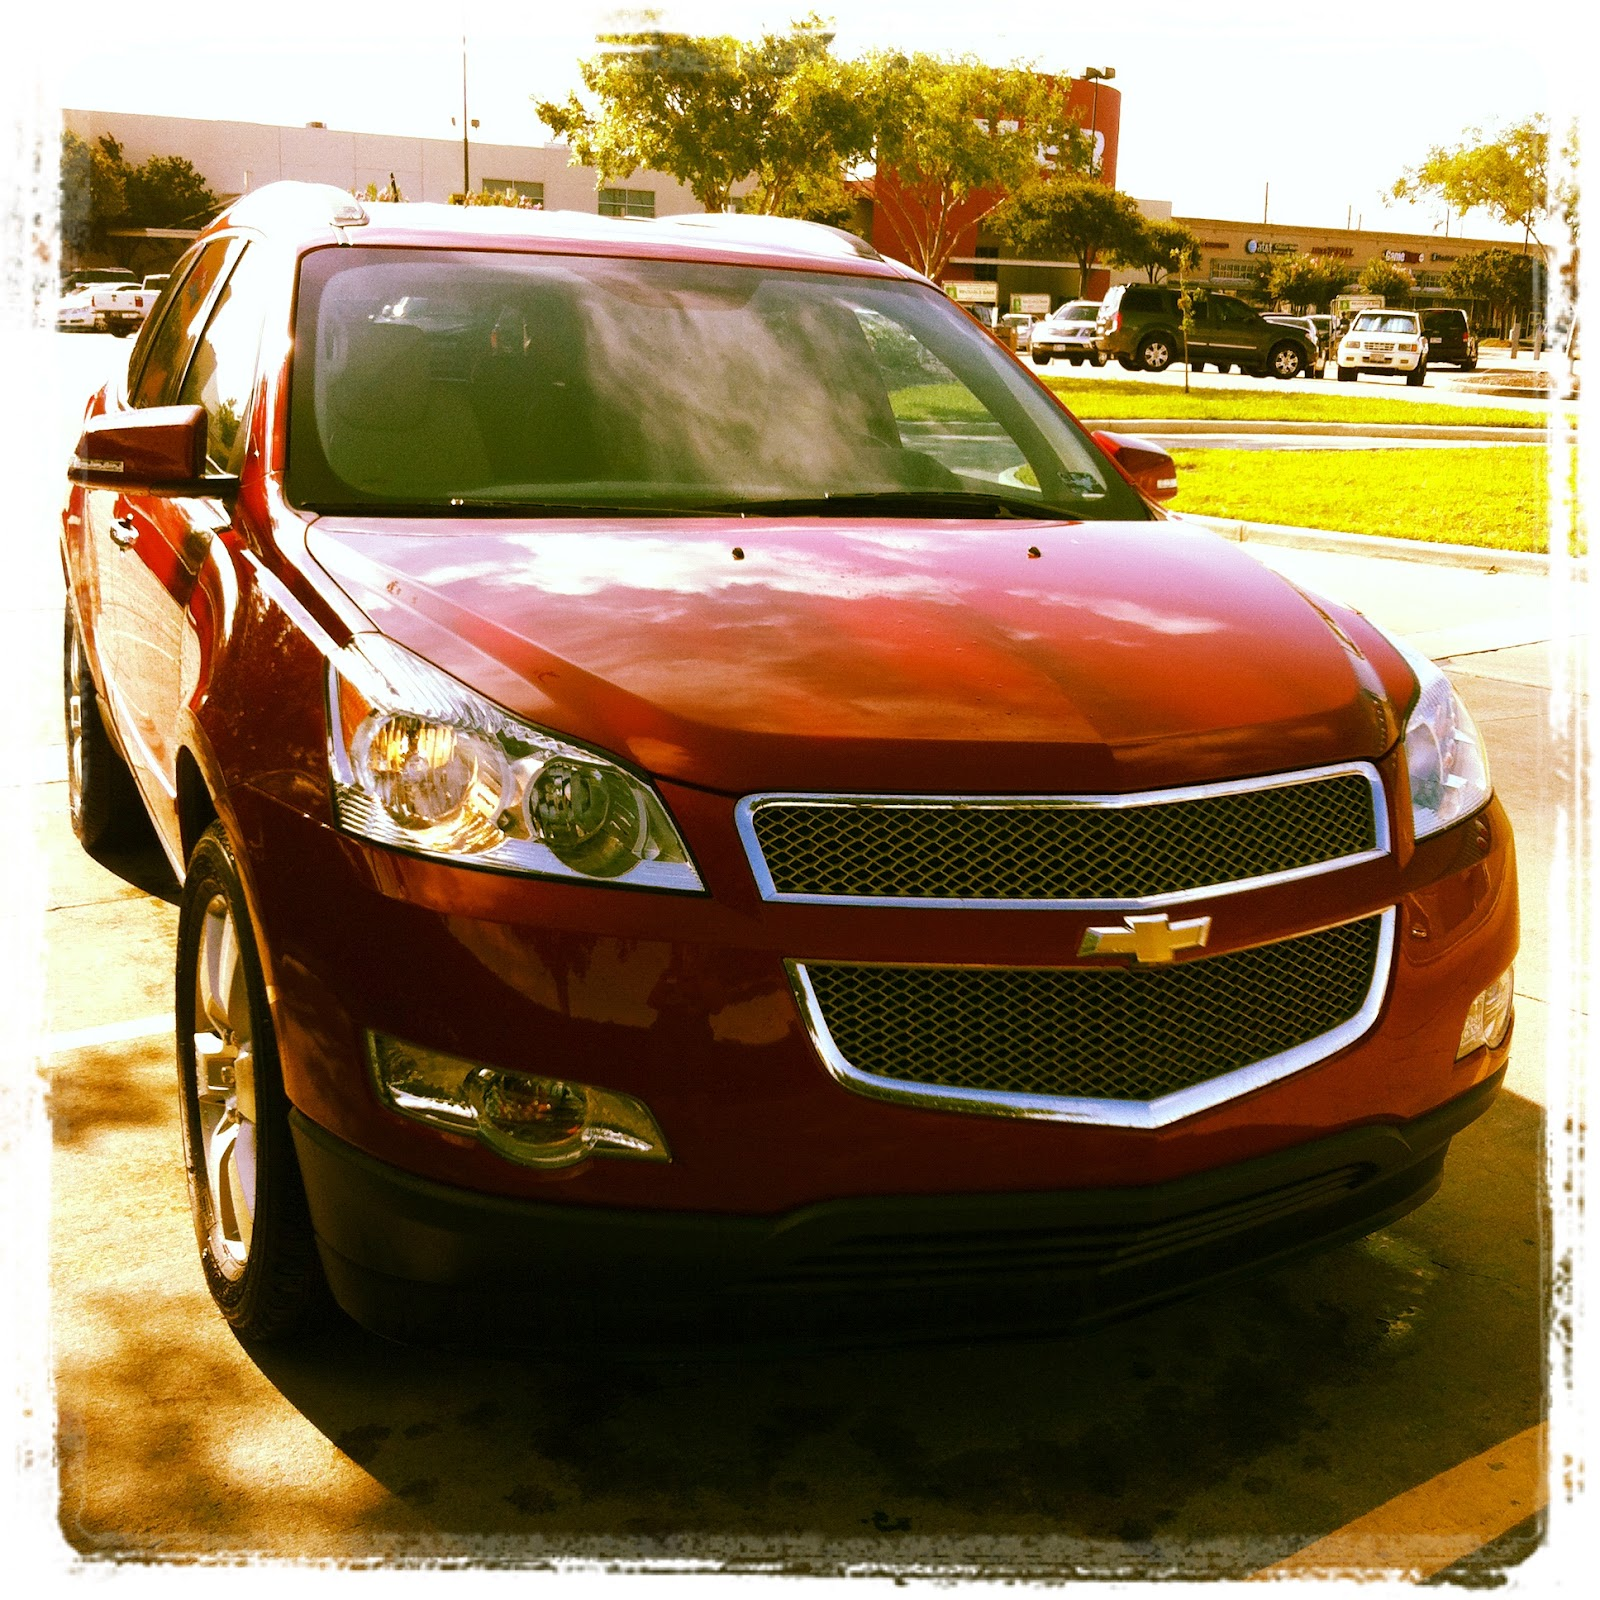 2012 Chevrolet Traverse Interior: Our #ChevyStaycation In The Traverse LTZ